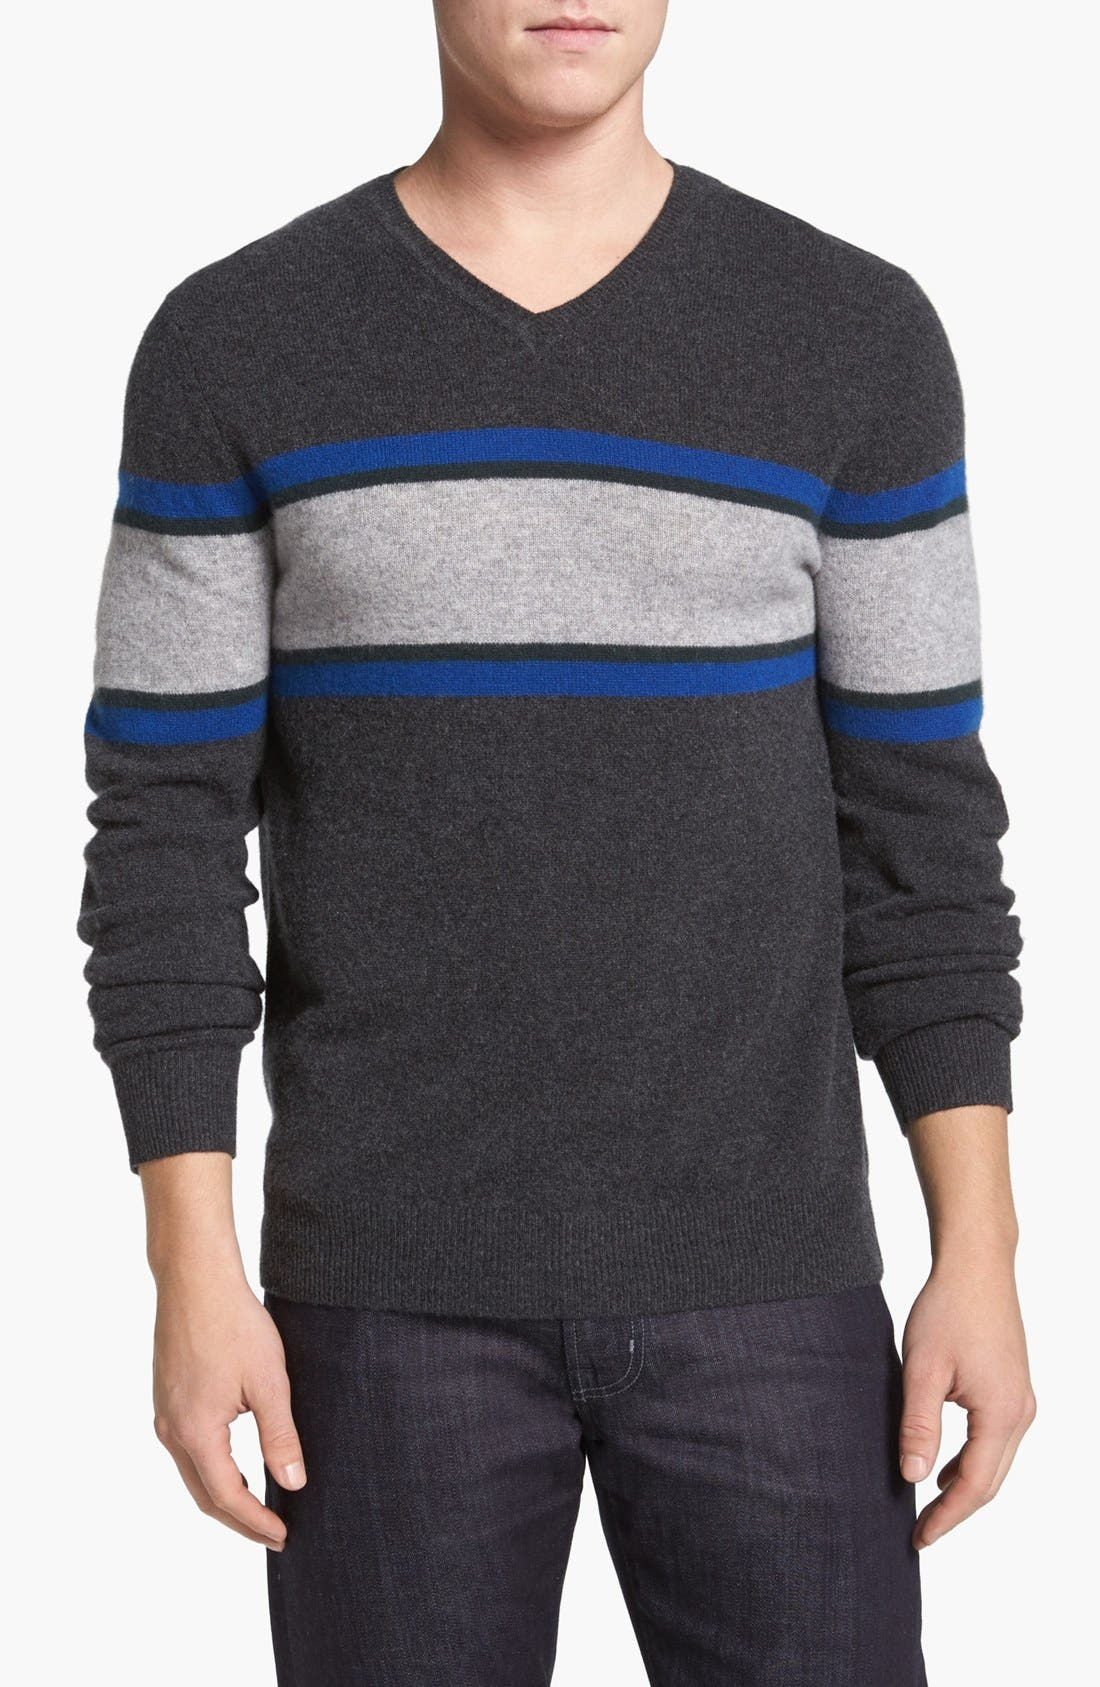 Main Image - 1901 Cashmere V-Neck Sweater